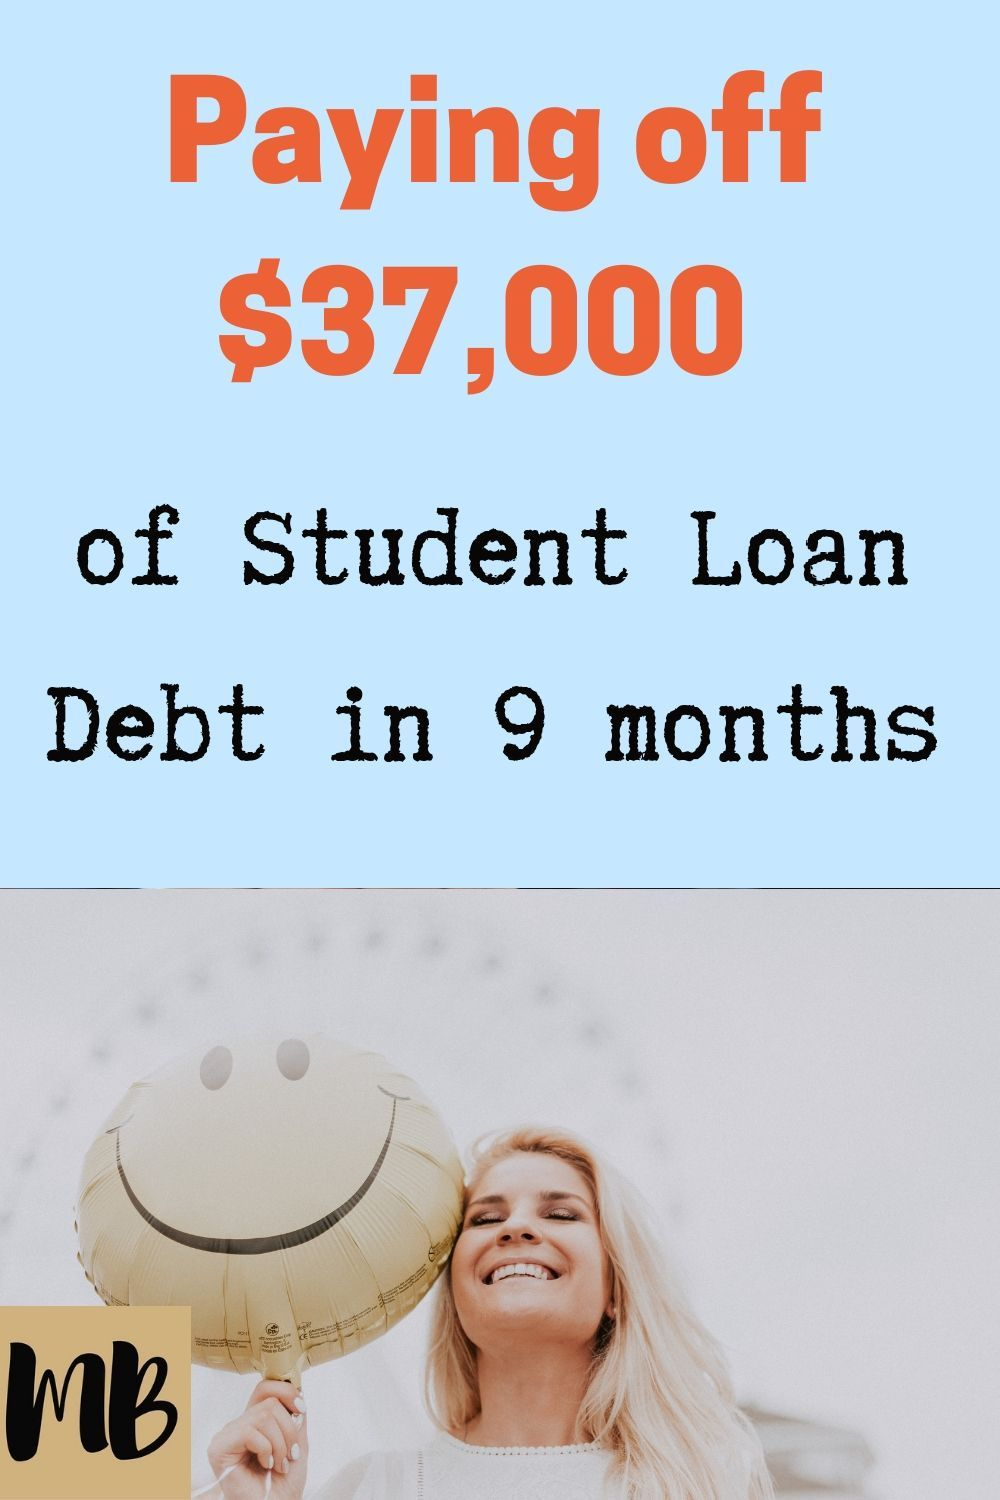 Paying Off 37,000 of Student Loan Debt in 9 Months in